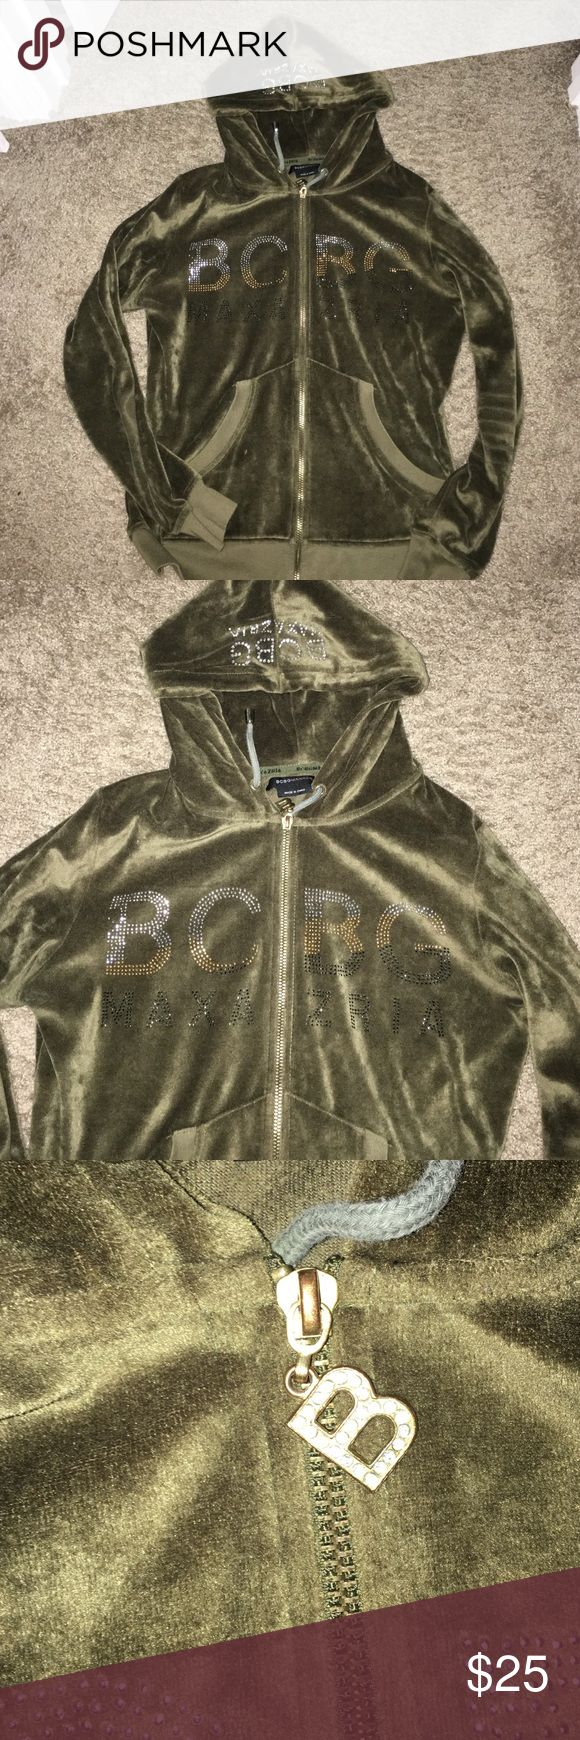 Like new BCBG khaki sweat suit velour jacket It is velour. Only worn a few times. Excellent condition. Has matching pants listed separately because they are a large. BCBG Jackets & Coats